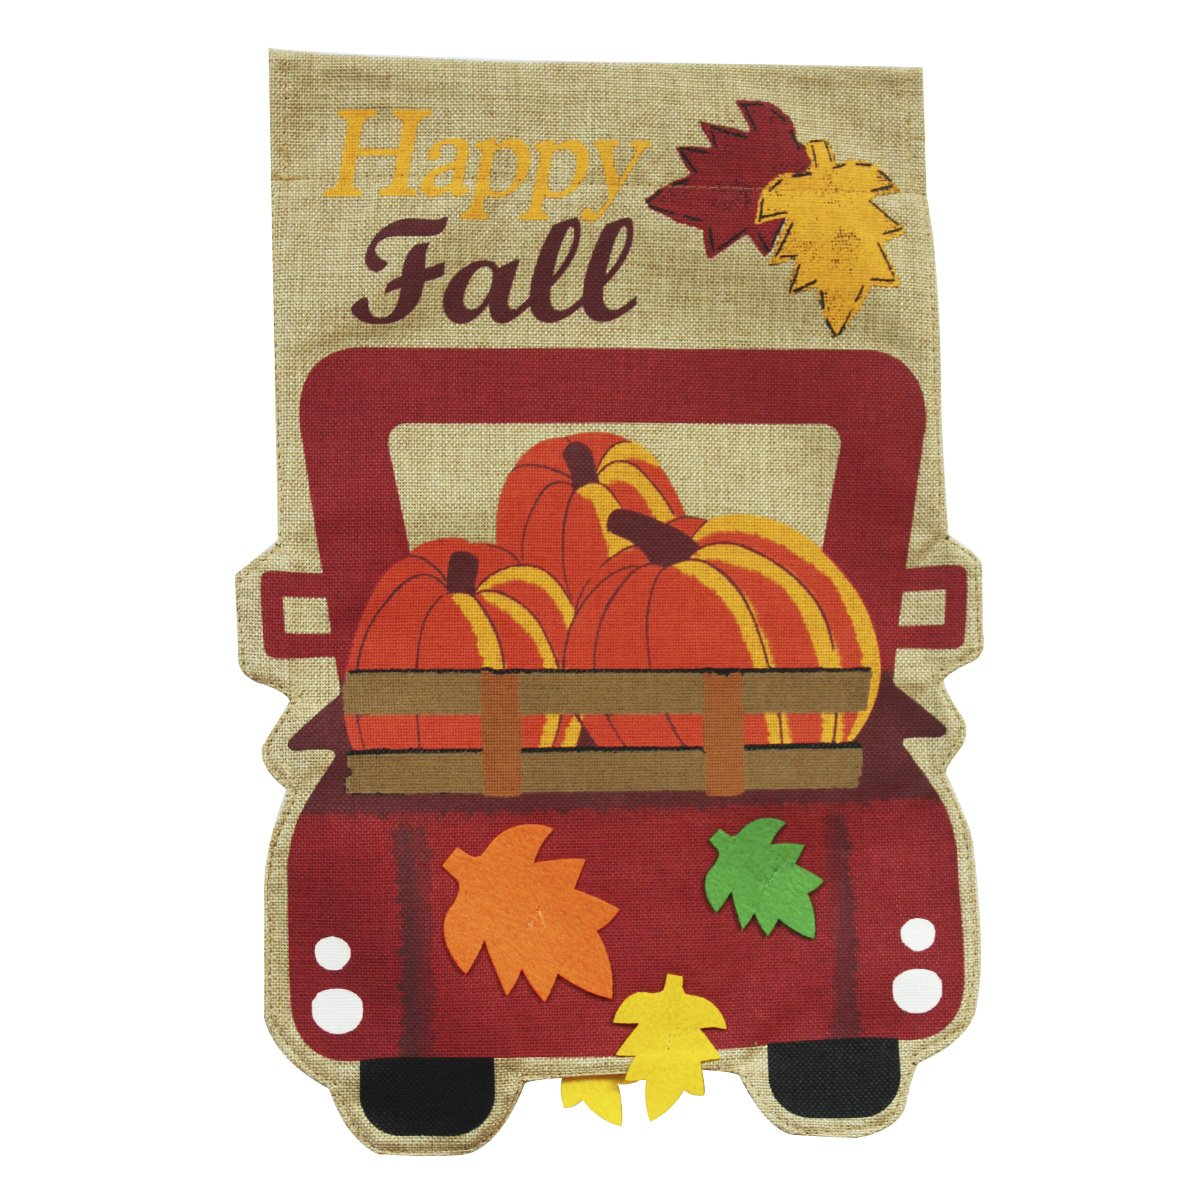 Morigins Happy Fall Pickup Burlap Garden Flag Give Thanks 12.5 x 18 Inch, Old Red Truck Seasonal Outdoor Flag Double Sided